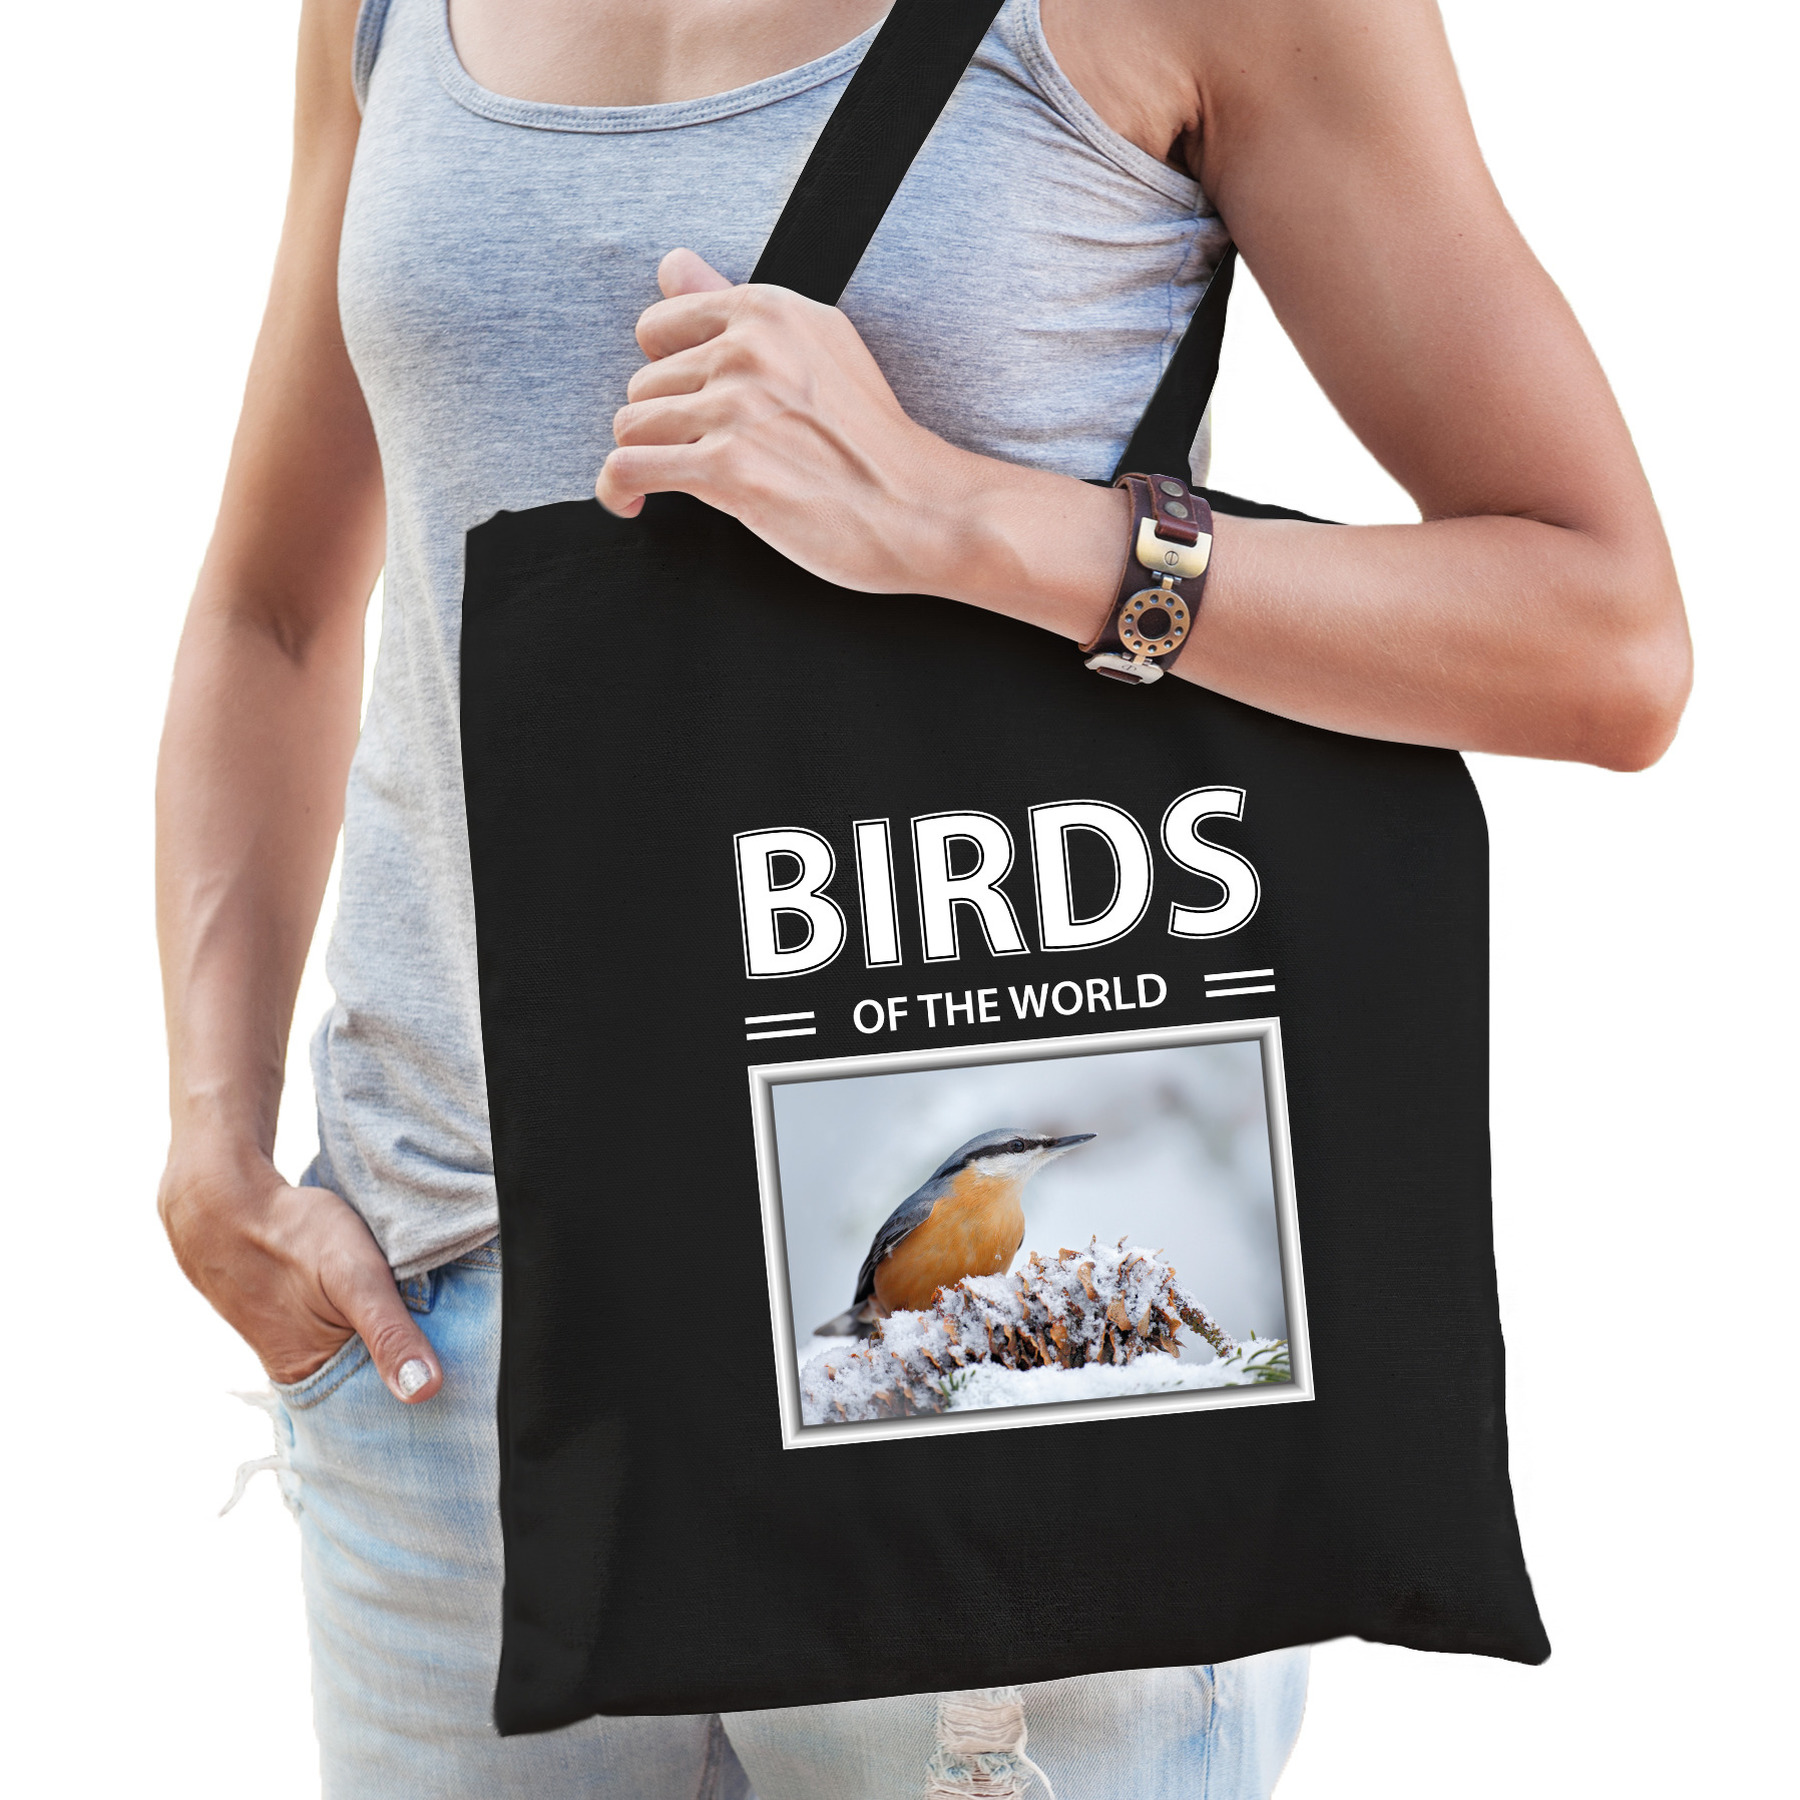 Katoenen tasje Boomklever vogels zwart - birds of the world Boomklever cadeau tas